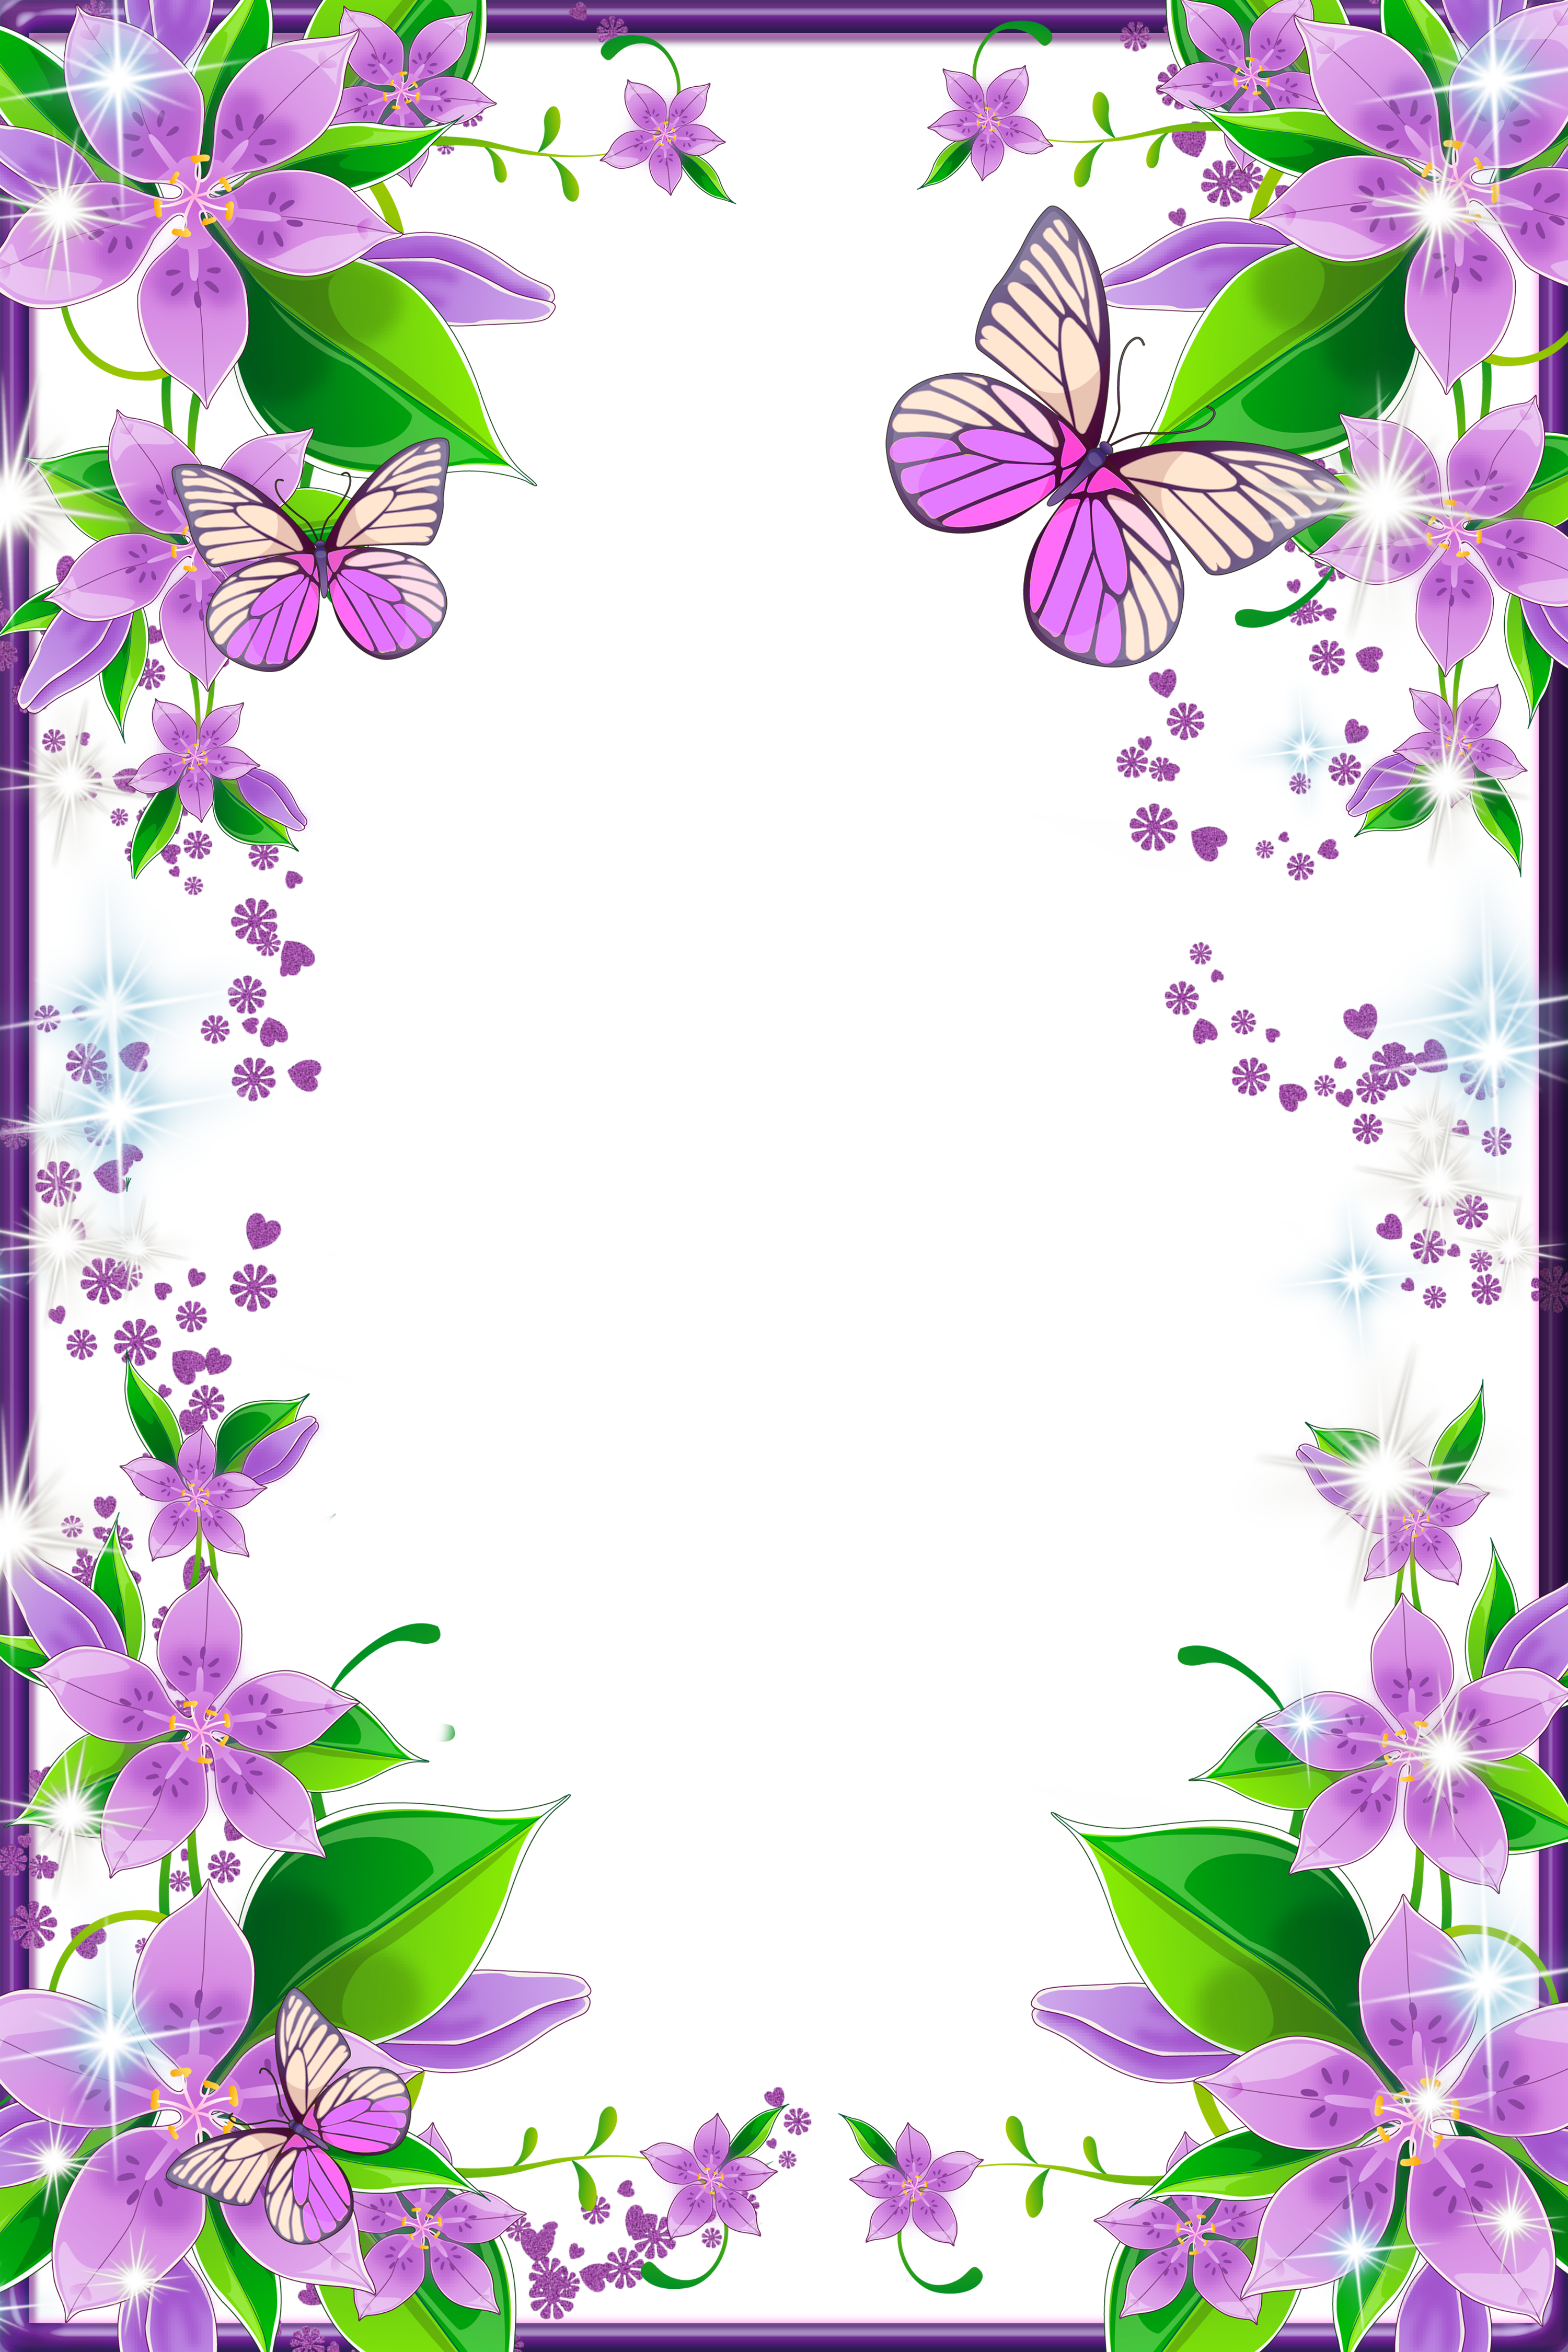 Butterfly frame clipart graphic download Light Purple Flowers and Butterflies Transparent PNG Photo Frame ... graphic download